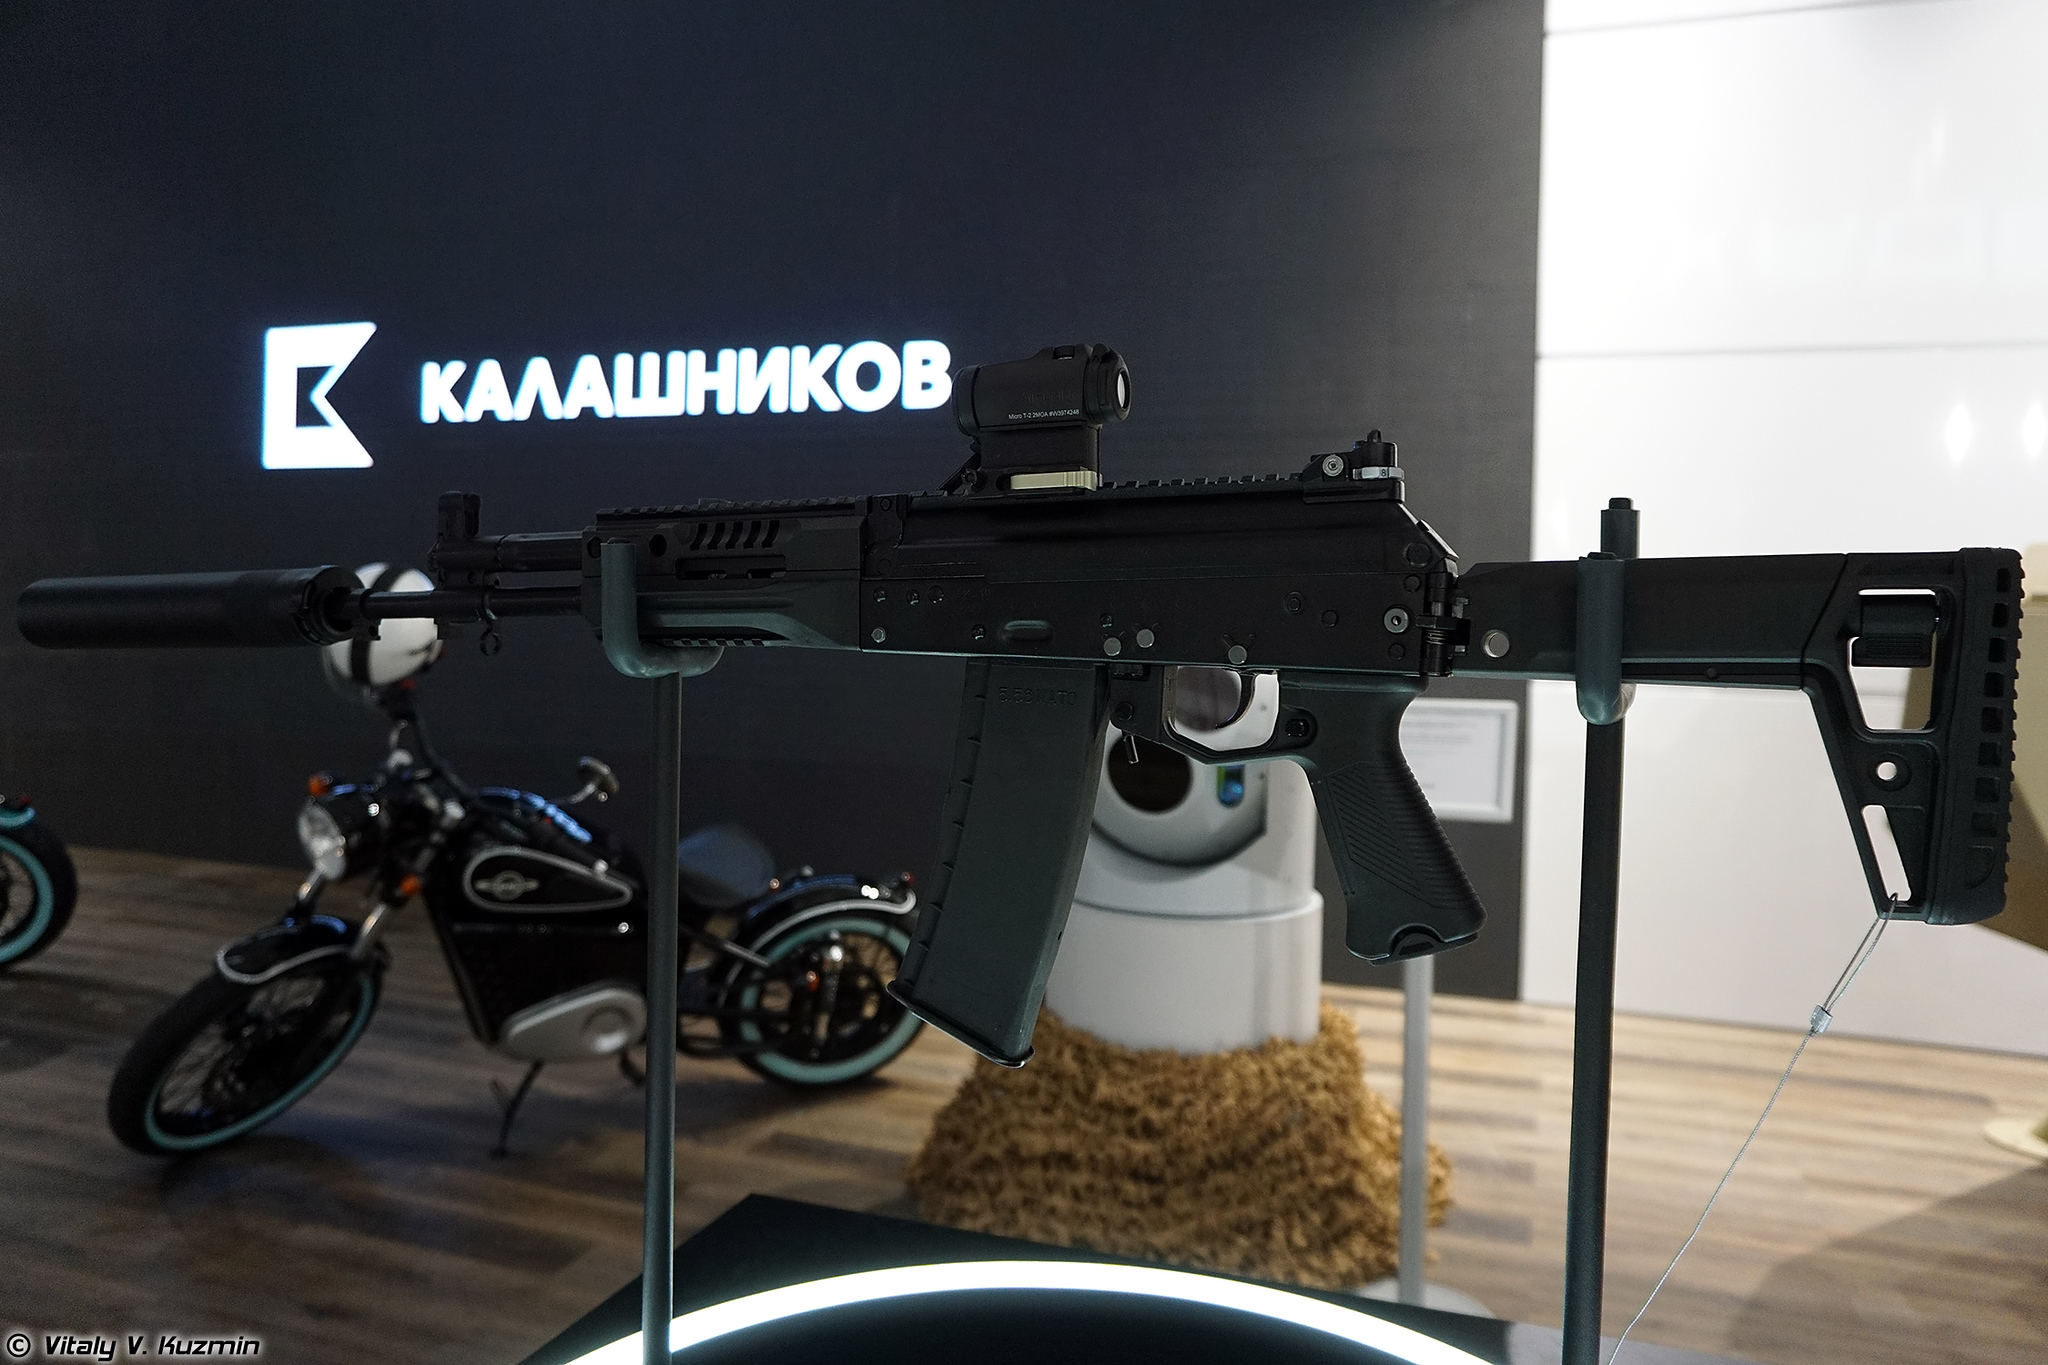 Russian Assault Rifles & Machine Guns Thread: #2 - Page 10 Army-2020-Pavilions-006-X4